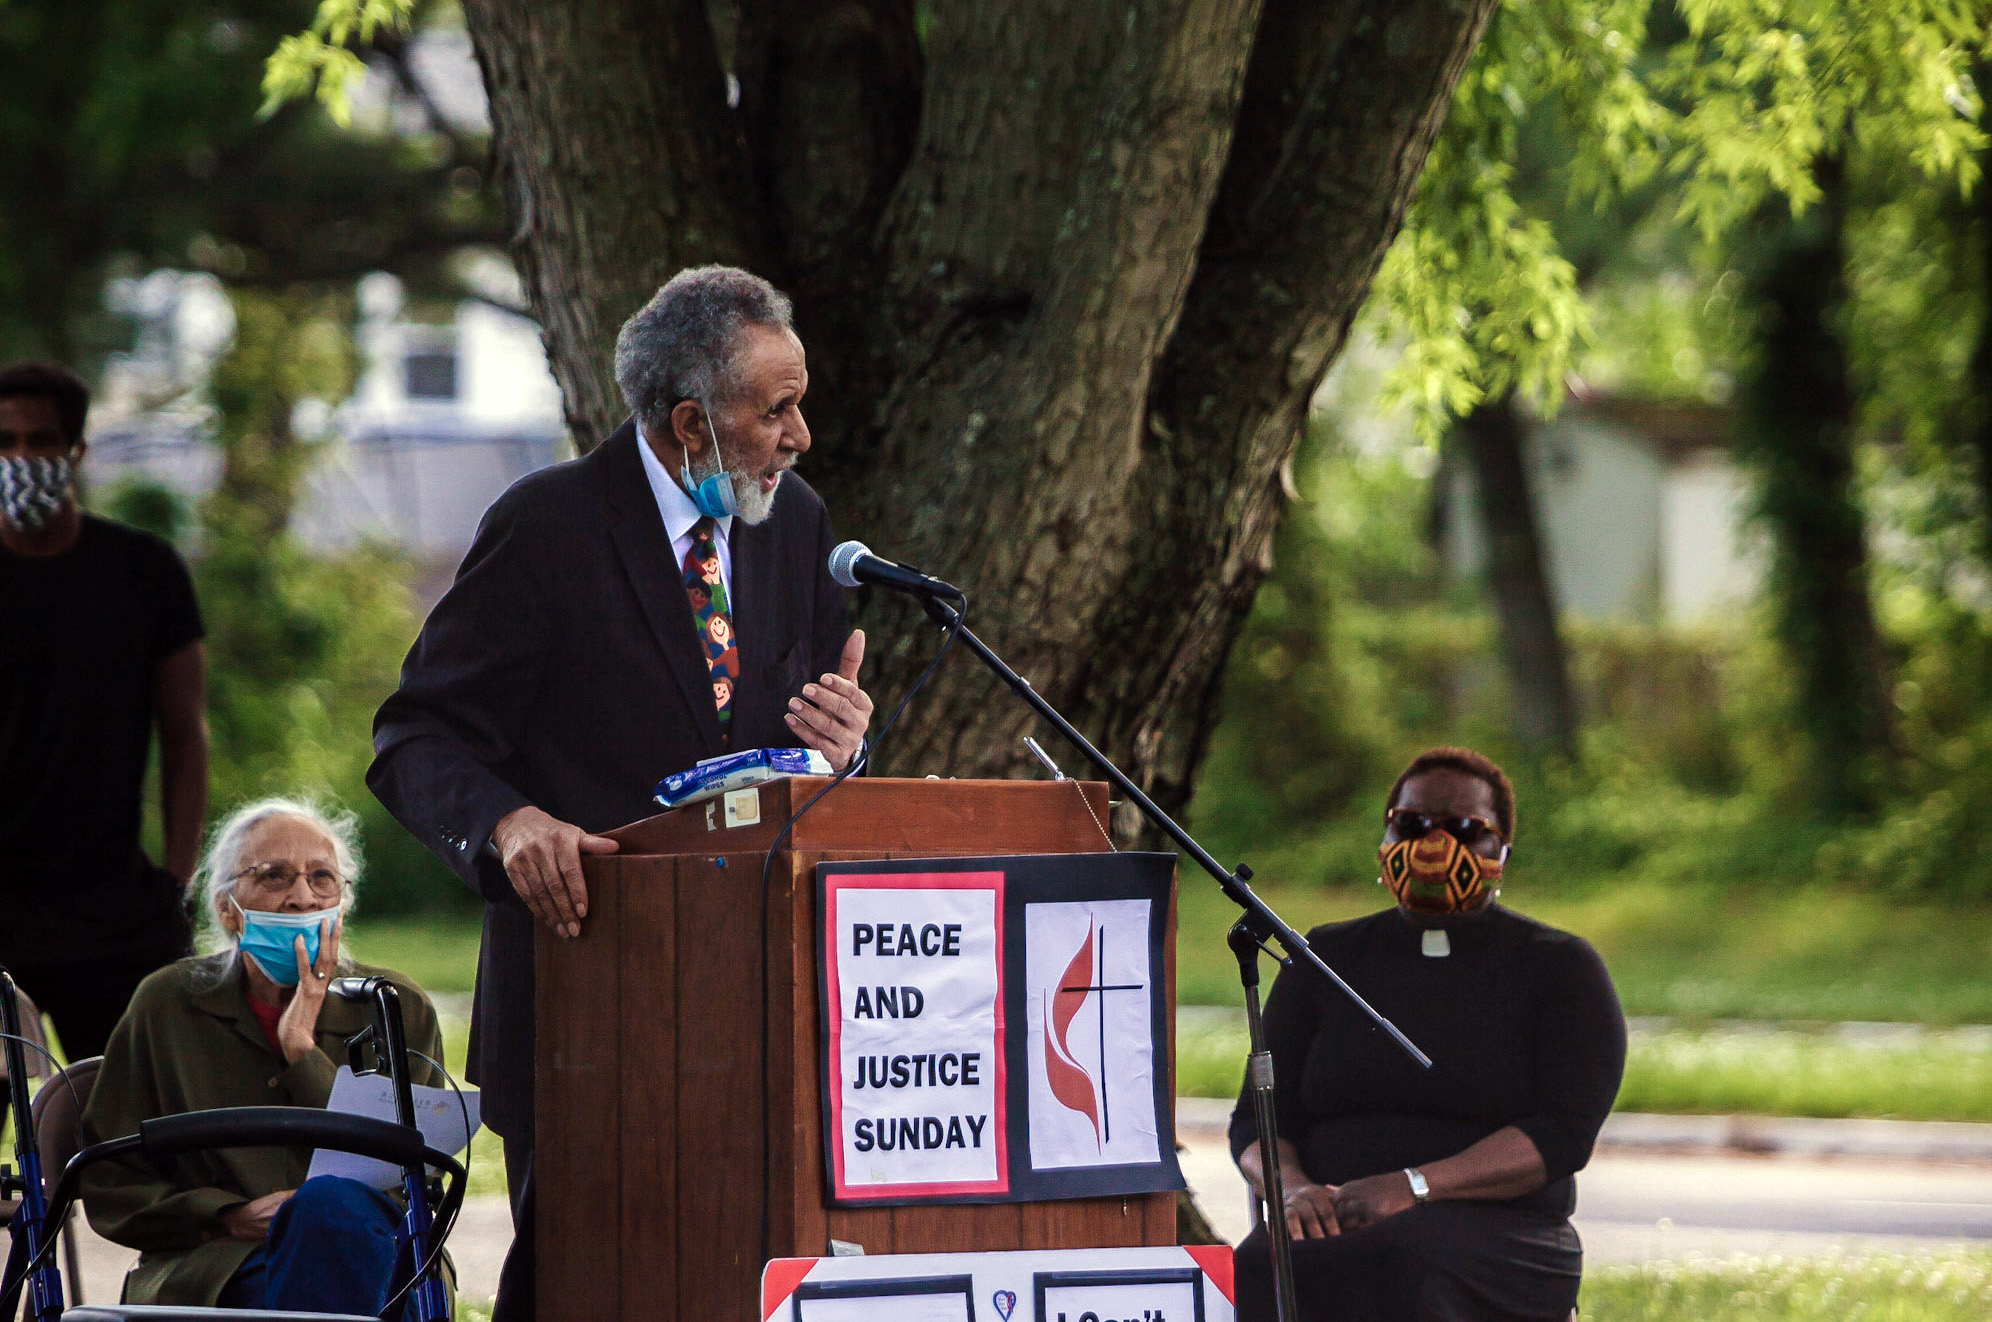 The Rev. Gilbert Caldwell, a retired United Methodist pastor and civil rights activist who marched alongside the Rev. Martin Luther King Jr., speaks during a Black Lives Matter rally June 7 in Willingboro, N.J. To Caldwell's right is his wife, Grace Caldwell. To Caldwell's left is the Rev. Vanessa Wilson, chairperson of the Greater New Jersey Commission on Race and Religion and pastor of Good Shepherd United Methodist Church in Willingboro. The protest was one of many taking place in the U.S. in smaller cities and towns involving United Methodists. Photo by Aaron Wilson Watson